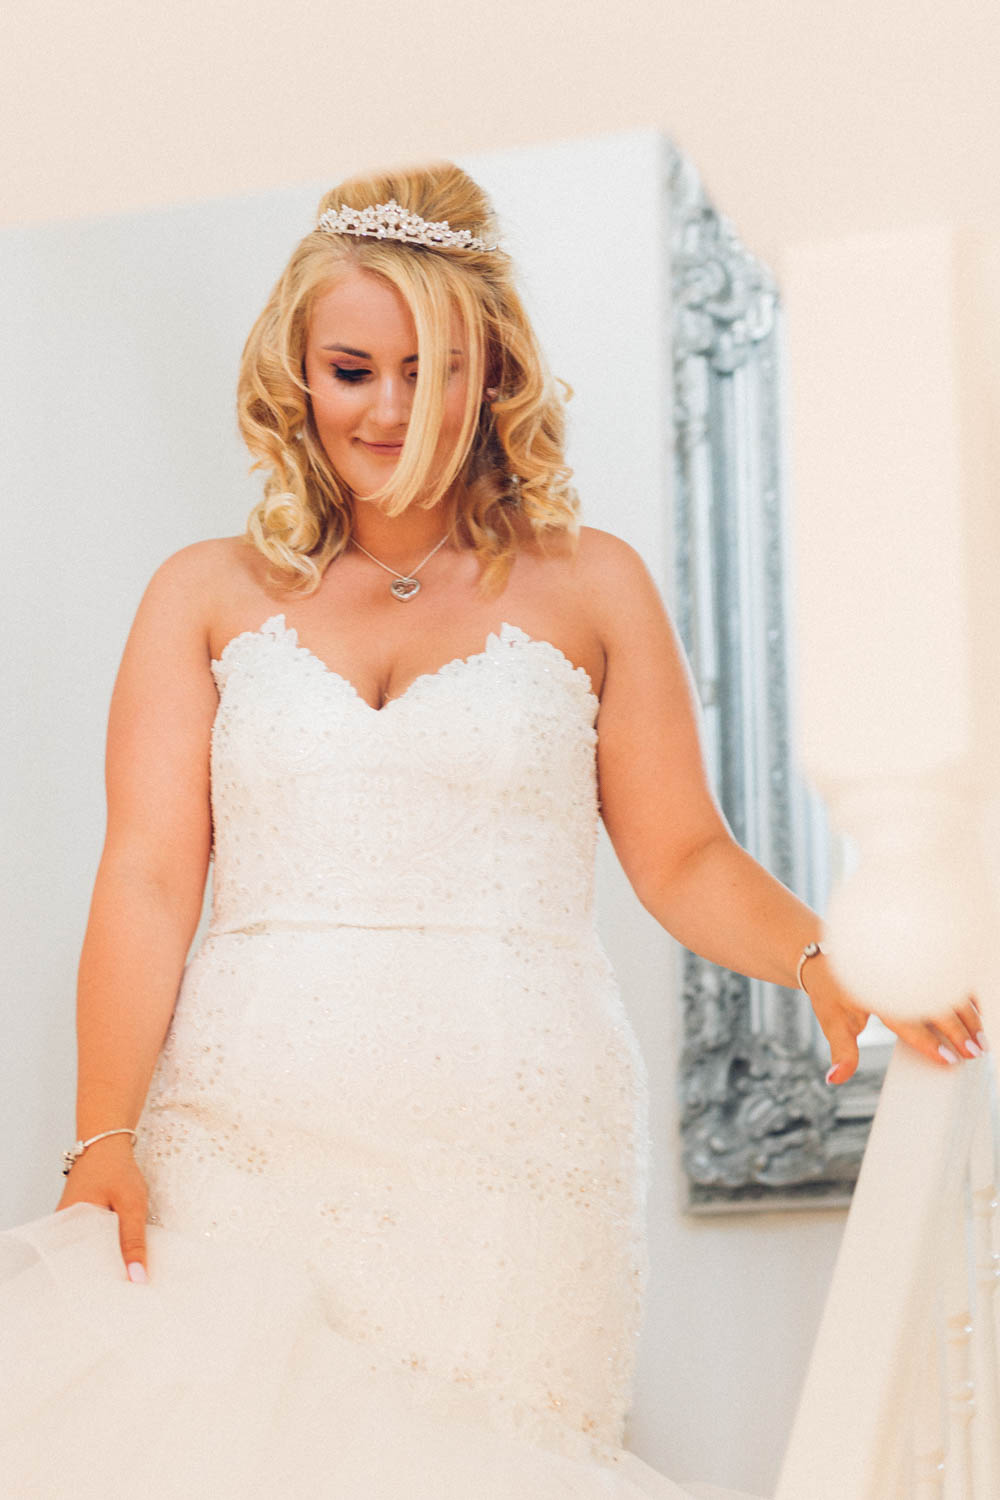 Special-Day-Photography-Manor-By-The-Lake-Cheltenham-Cheltenham-Manor-Wedding-bride-walking-down-the-stairs.jpg